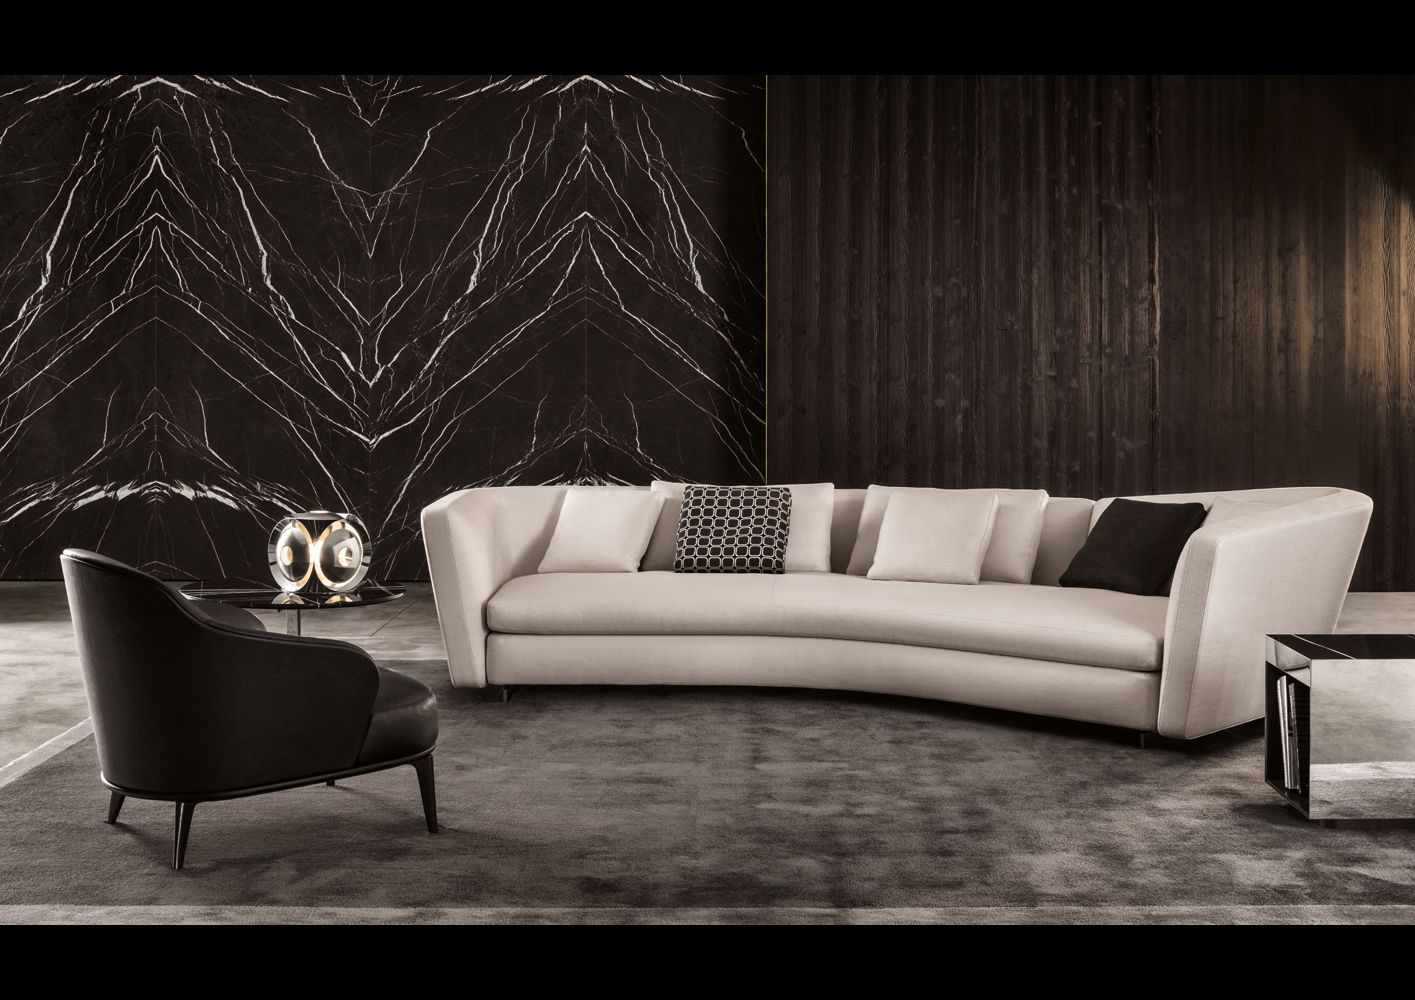 Sofa from Minotti's 2015 Collection